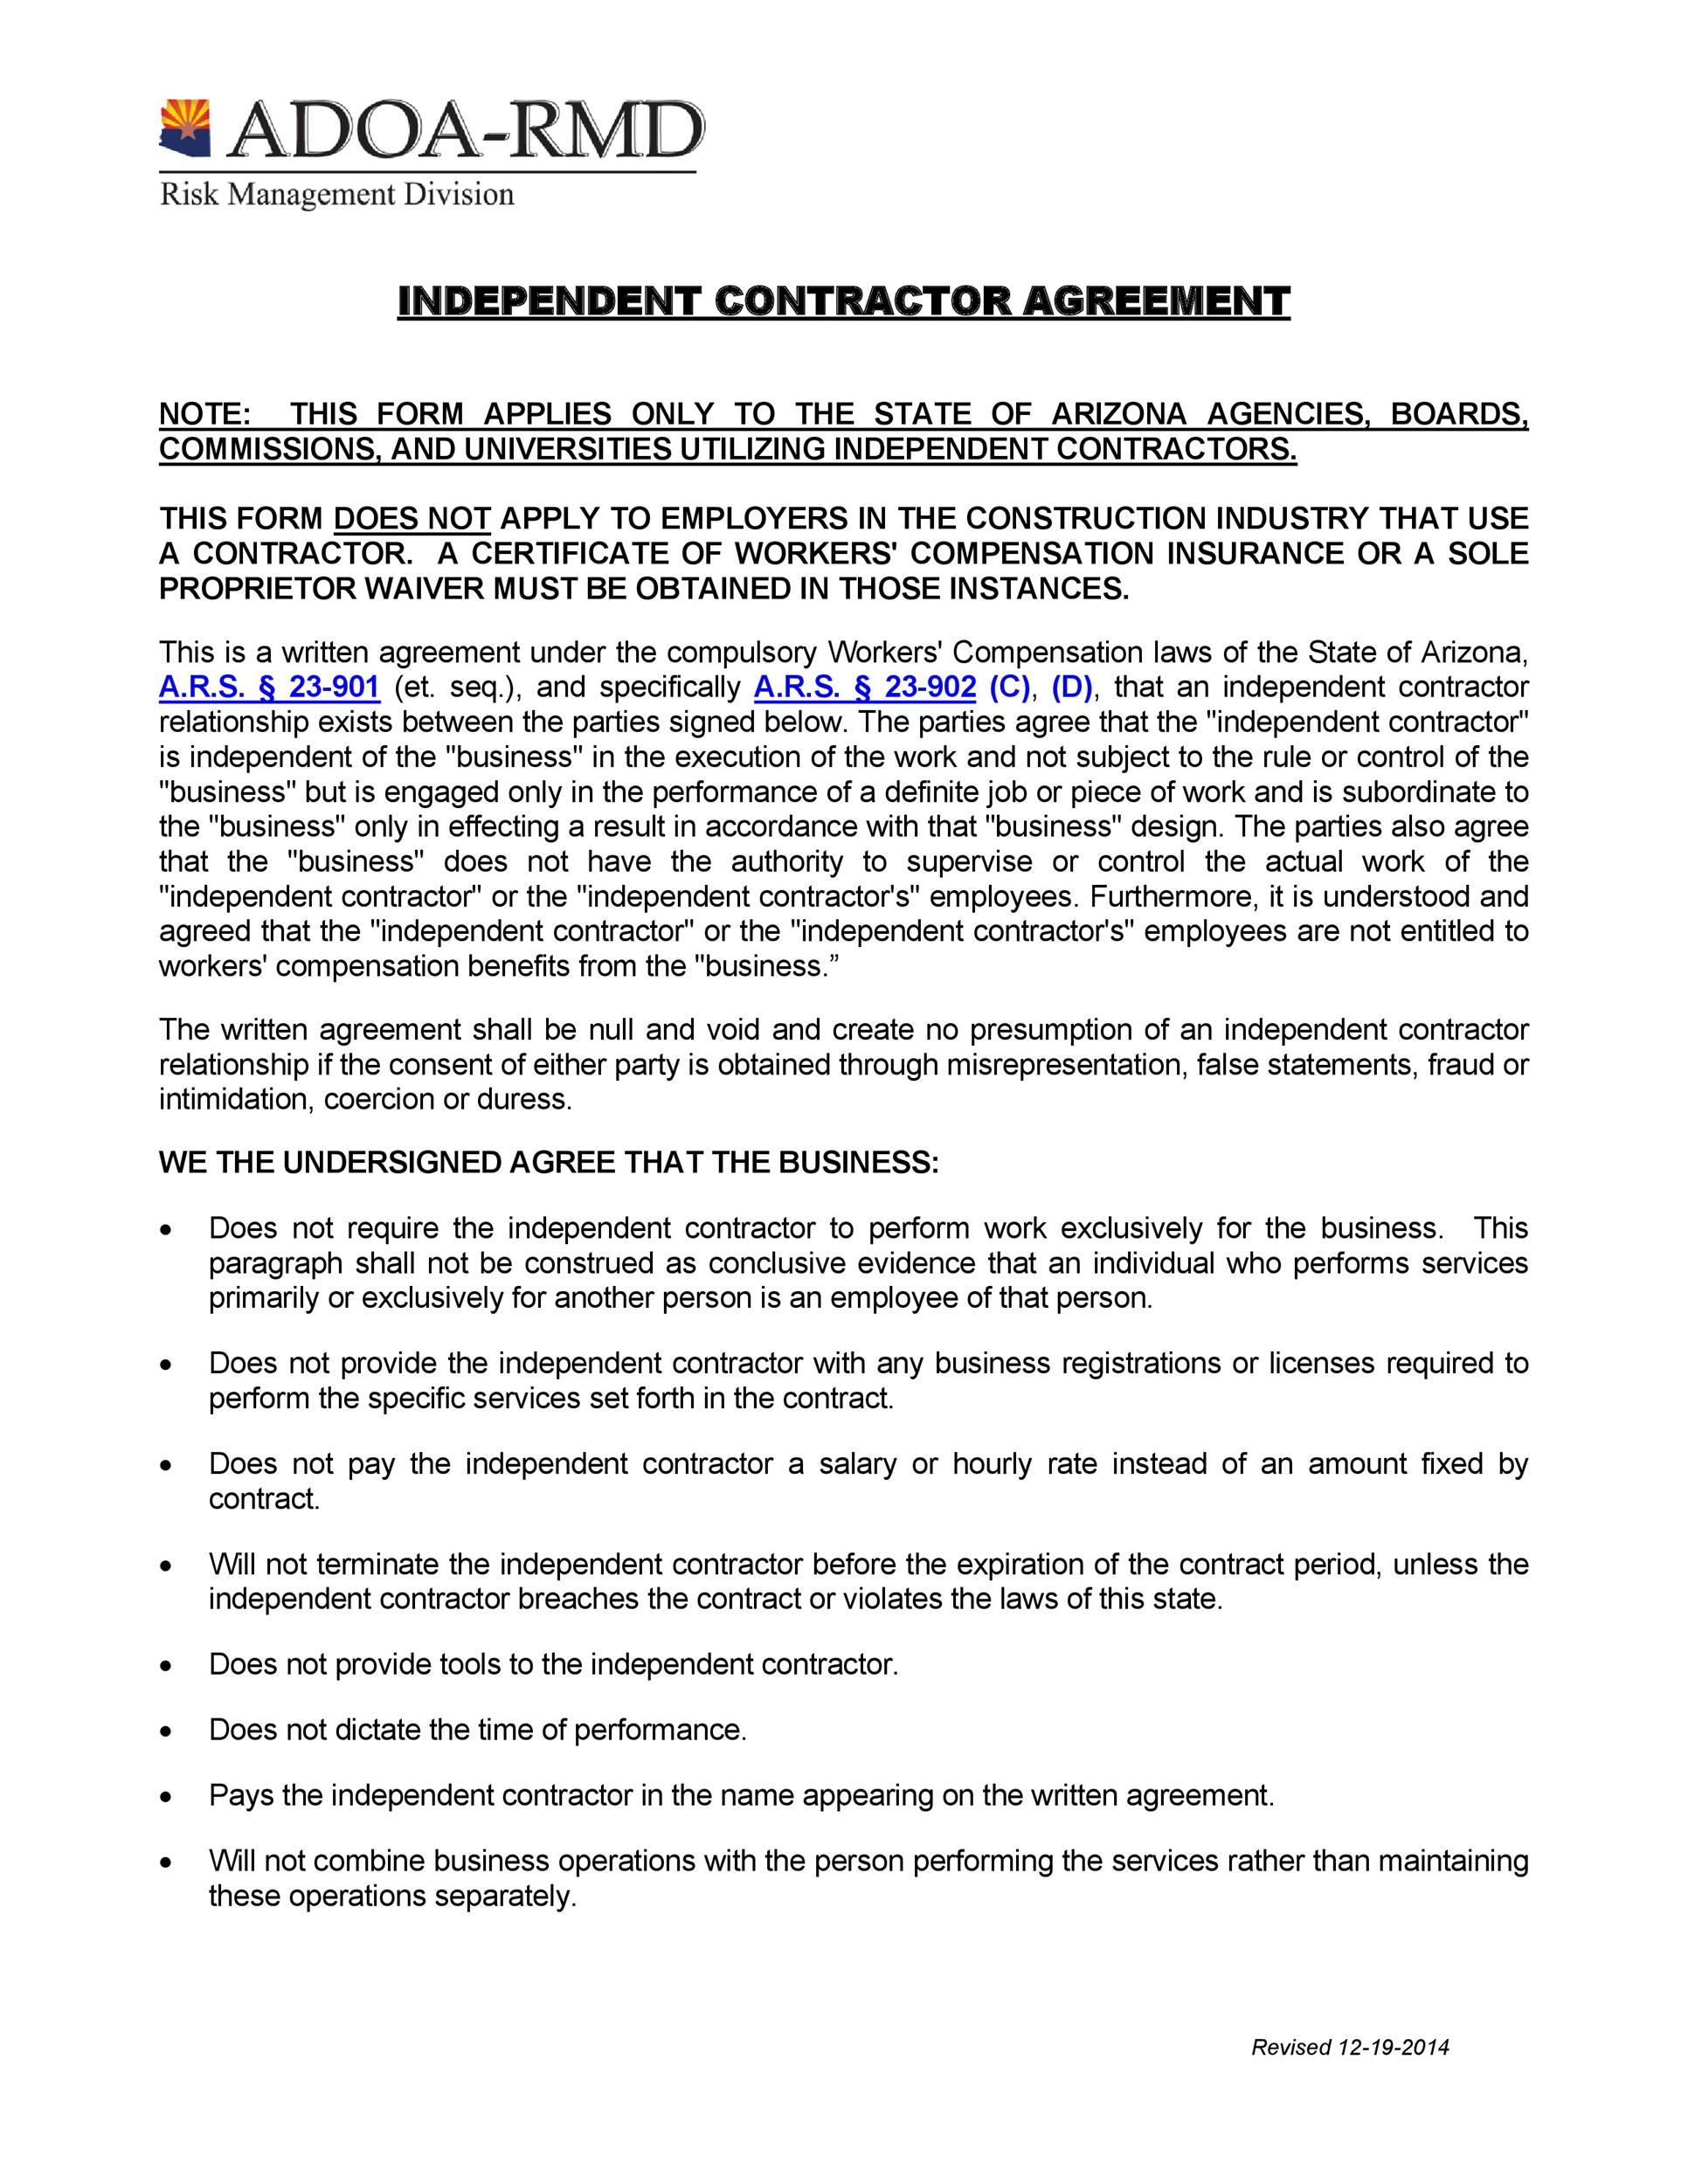 50 Free Independent Contractor Agreement Forms Templates